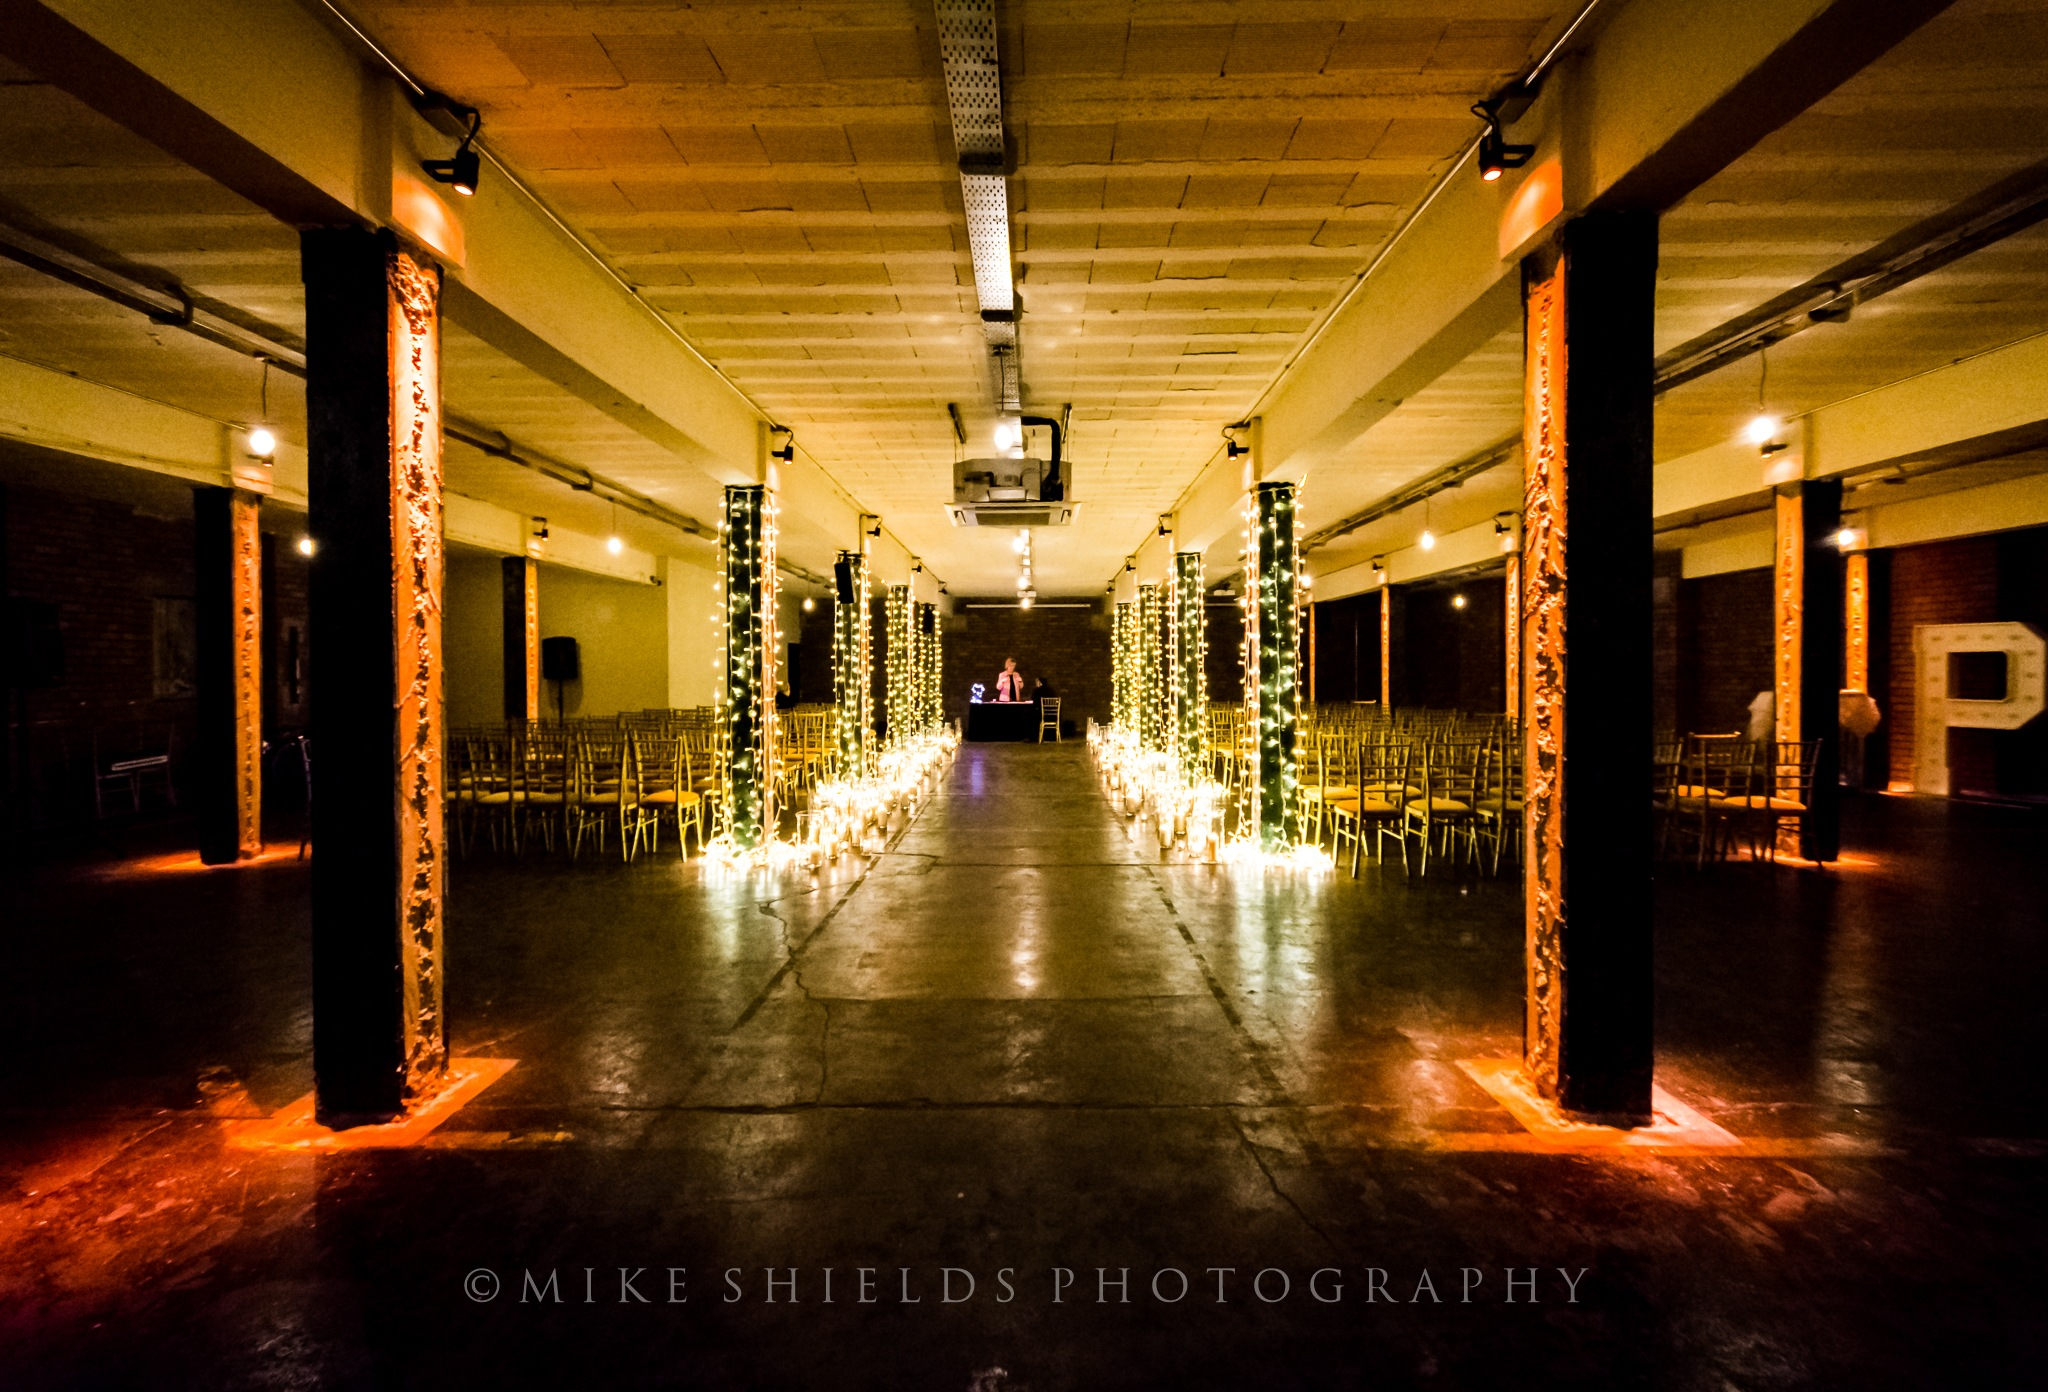 Light Room by MikeShieldsPhotography